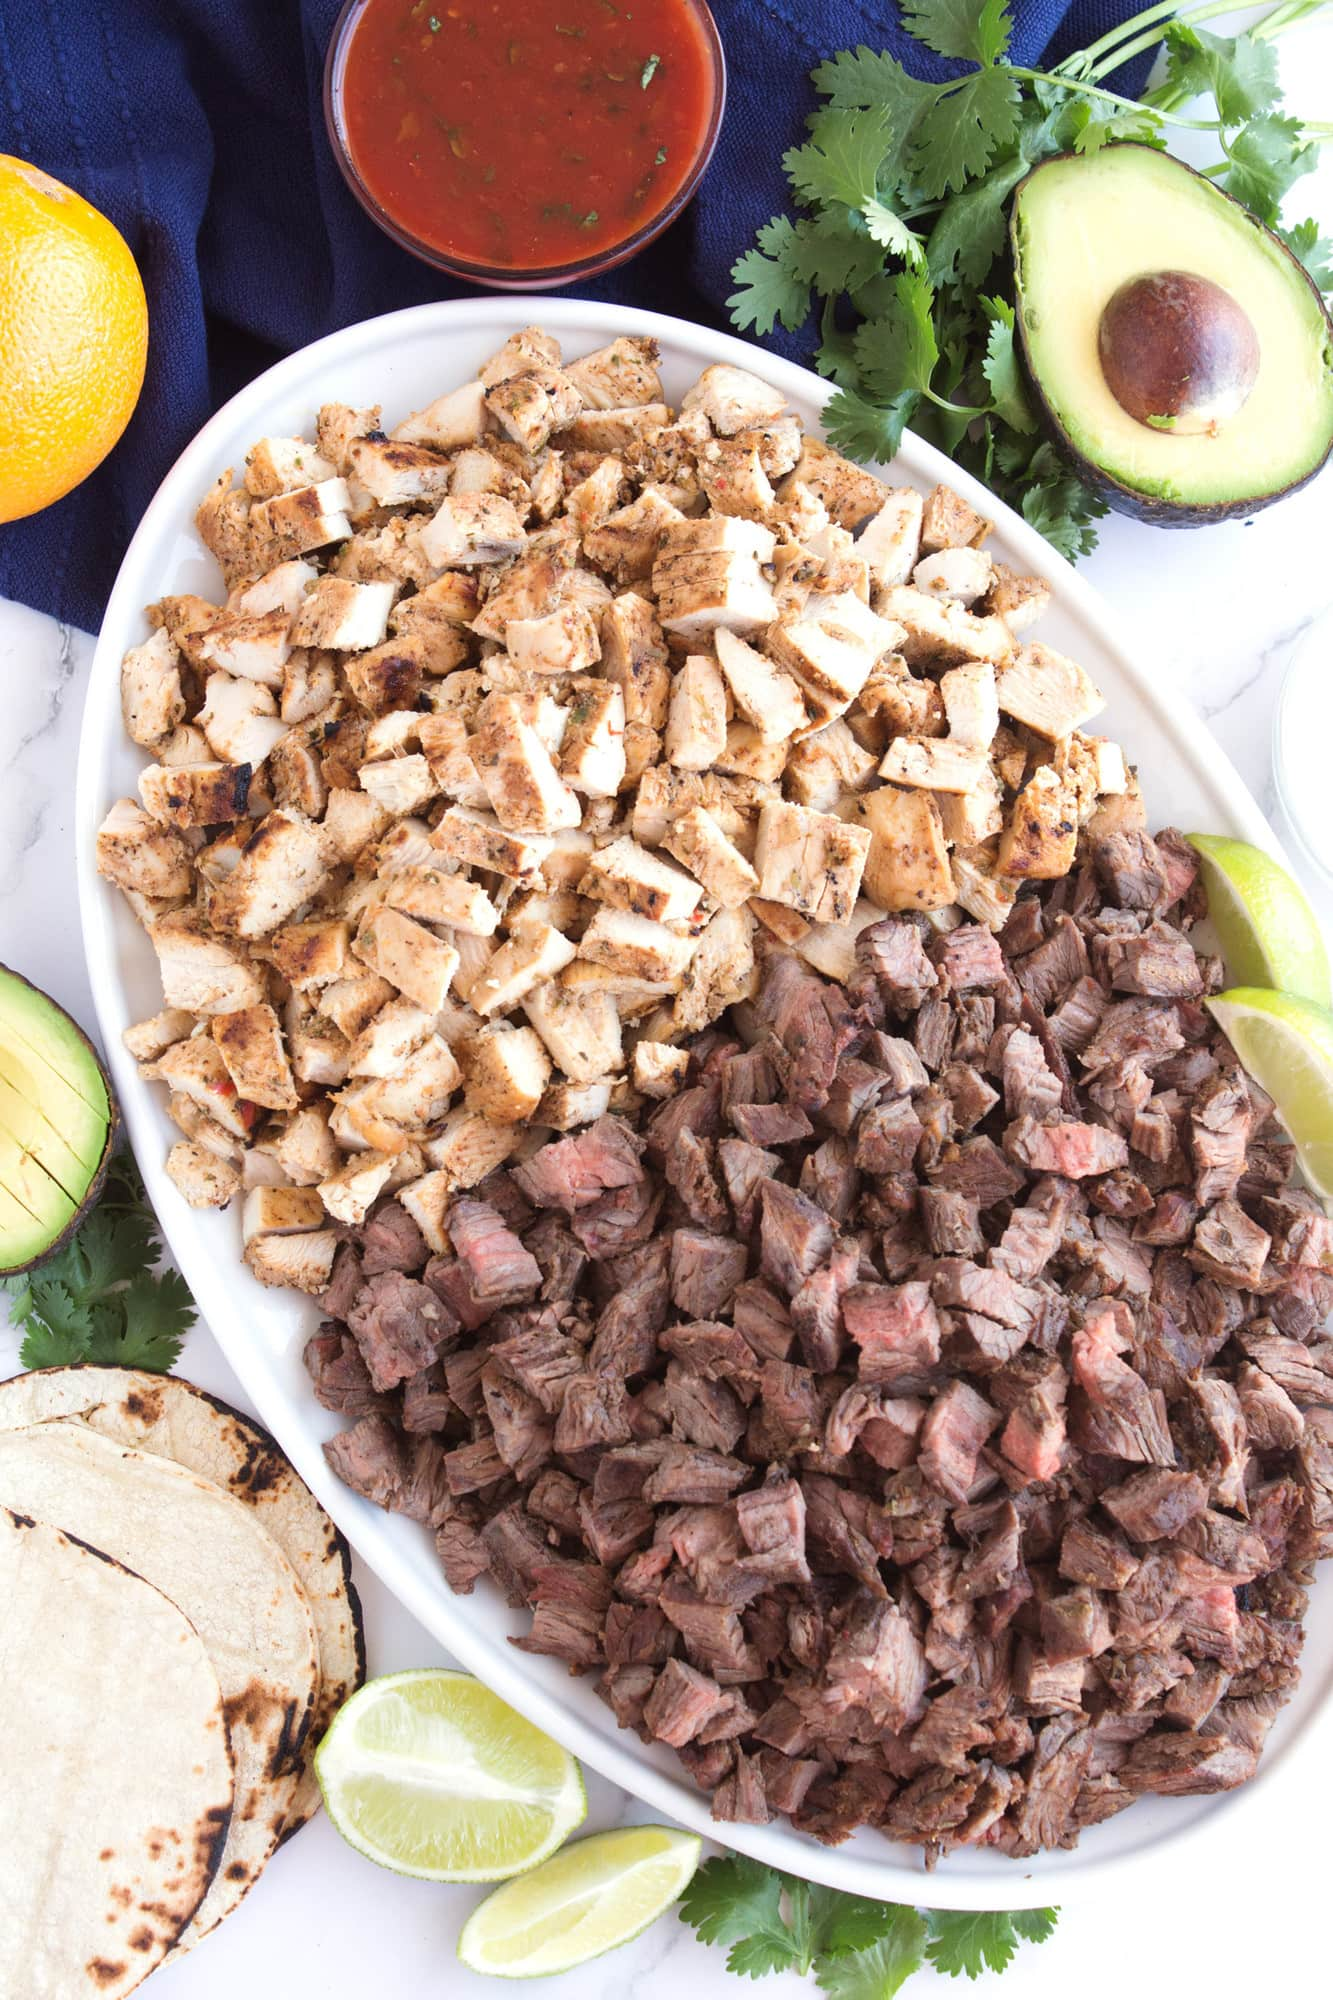 Grilled chicken and steak platter for tacos